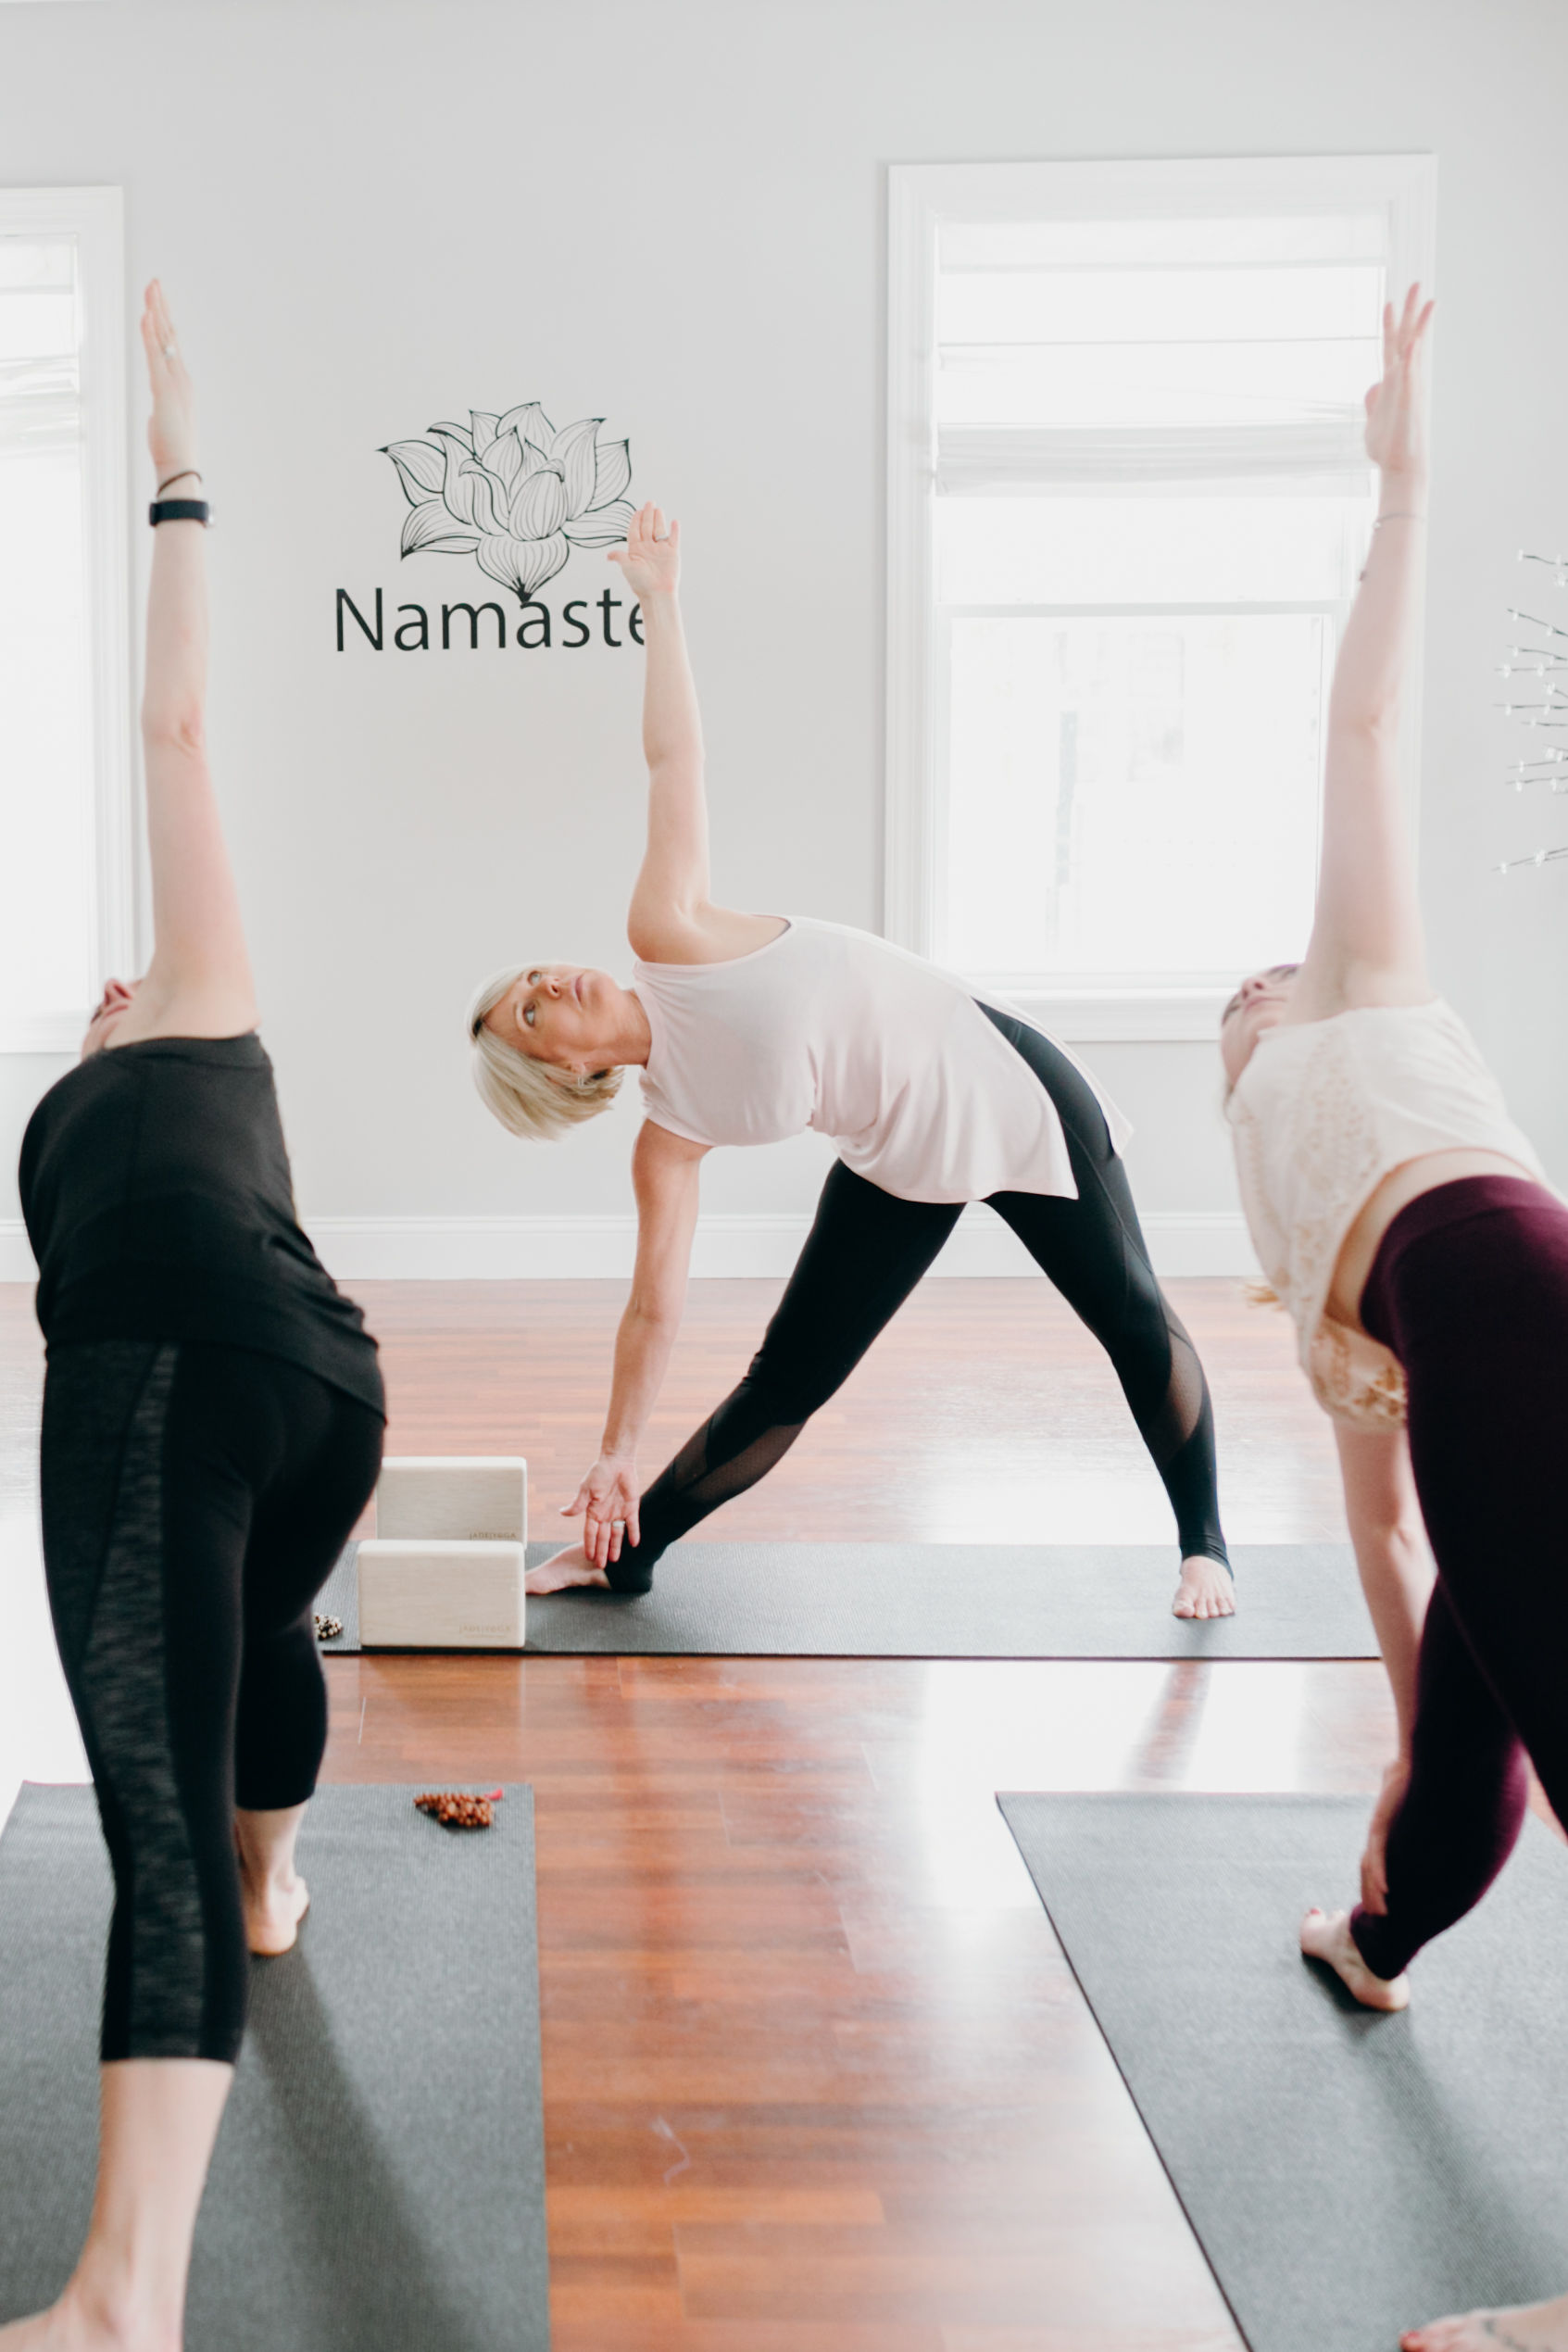 Schedule - Click here to sign up on MindBody.Sunday 9:15–10:15 Warm Yoga with Wendy10:30 - 11:15 Barre 45 with rotating teacher6:00–7:00 Restorative Yoga with LiliMonday 9:15–10:15 Barre Blend with Pamela4:30–5:30 Warm Slow Flow with Megan5:45 - 6:15 Express Barre with Megan6:30–7:30 Rock n Flow Yoga Flow with KirbyTuesday8:15-9:00 HIIT 45 with Kelly T9:15–10:15 Warm Slow Flow with Megan3:-00-3:45 Beginner/ Gentle Yoga with Robin4:00-4:30 Free Intro to Barre with Robin5:45–6:15 Express HIIT with Sharon6:30–7:30 Warm Flow with SharonWednesday 9:15–10:15 Barre with Pamela4:30–5:30 HIIT 45 with Megan7:00-8:00. Vinyasa Vibes with Kelly PThursday9:15–10:15 Barre Blend with Megan 4:30–5:30 Warm Slow Flow with Joanne5:45–6:15 Express HIIT with Megan6:30–7:30 Warm Slow Flow with KellyFriday 9:15–10:15 All Levels Yoga with Lili4:30–5:30 Zumba with Ashley 6:00-7:00. Restorative Yoga with Lili/WendySaturday 8:15–9:00 Barre 45 9:15–10:15 All Levels Yoga with Emily10:30–11:30 Power Yoga with Lisa